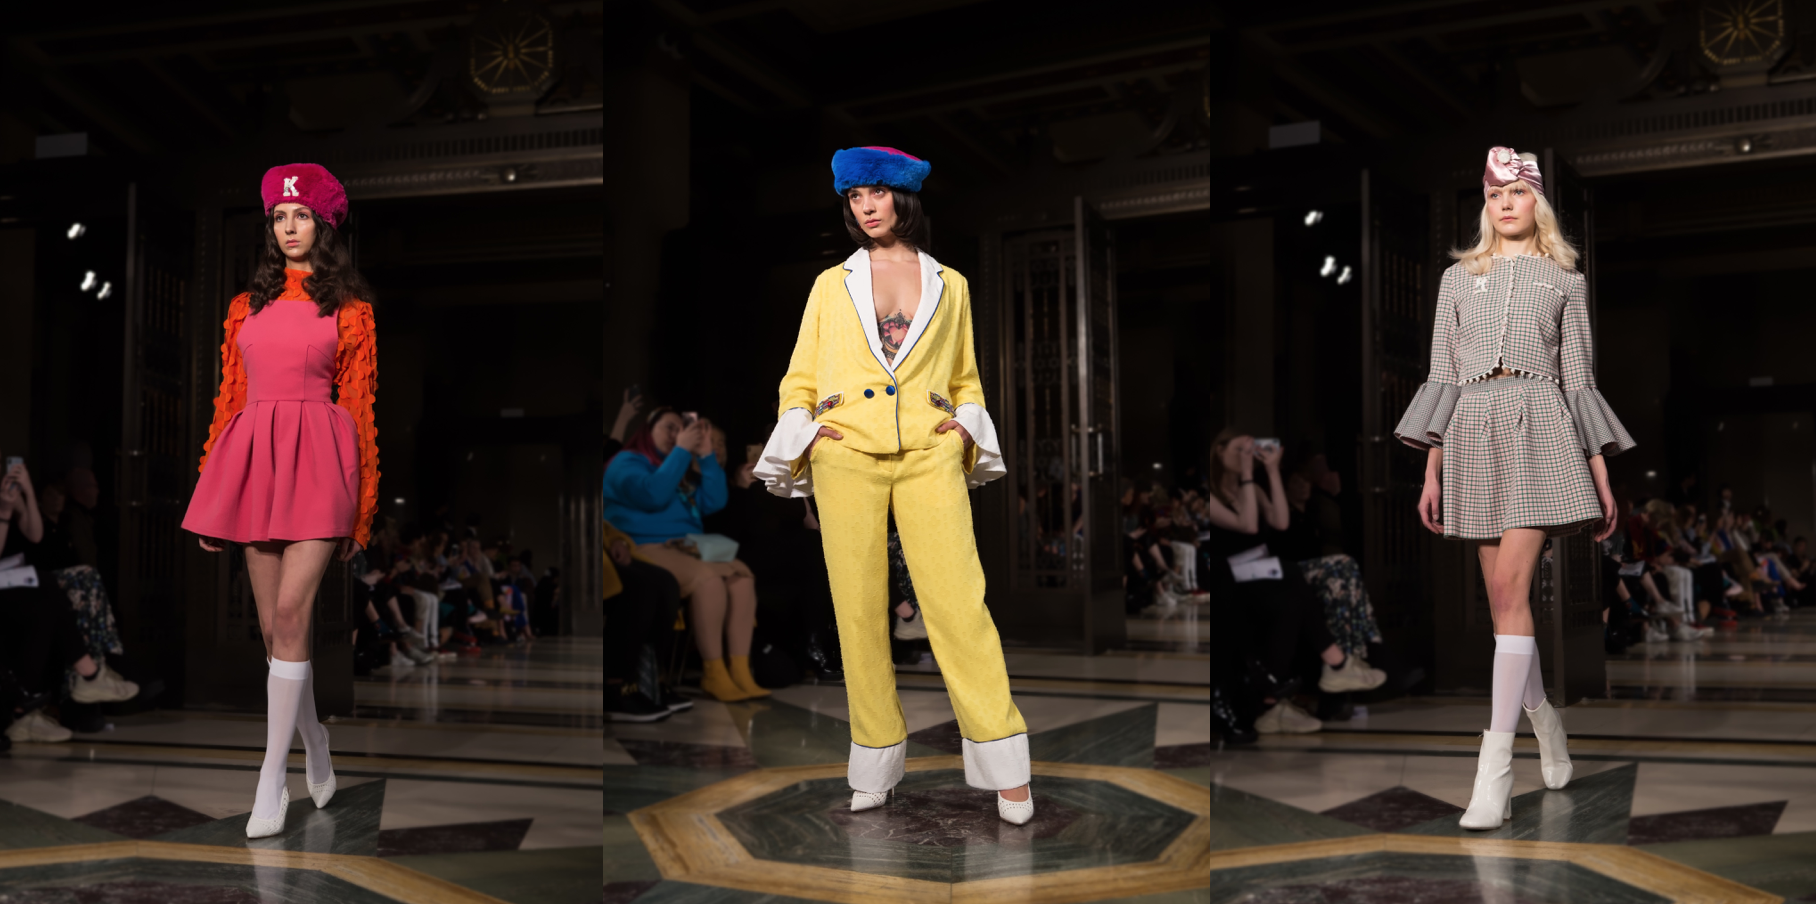 Kalissi AW19 Collection as presented by Fashion Scout | Photography by Rianna Gayle